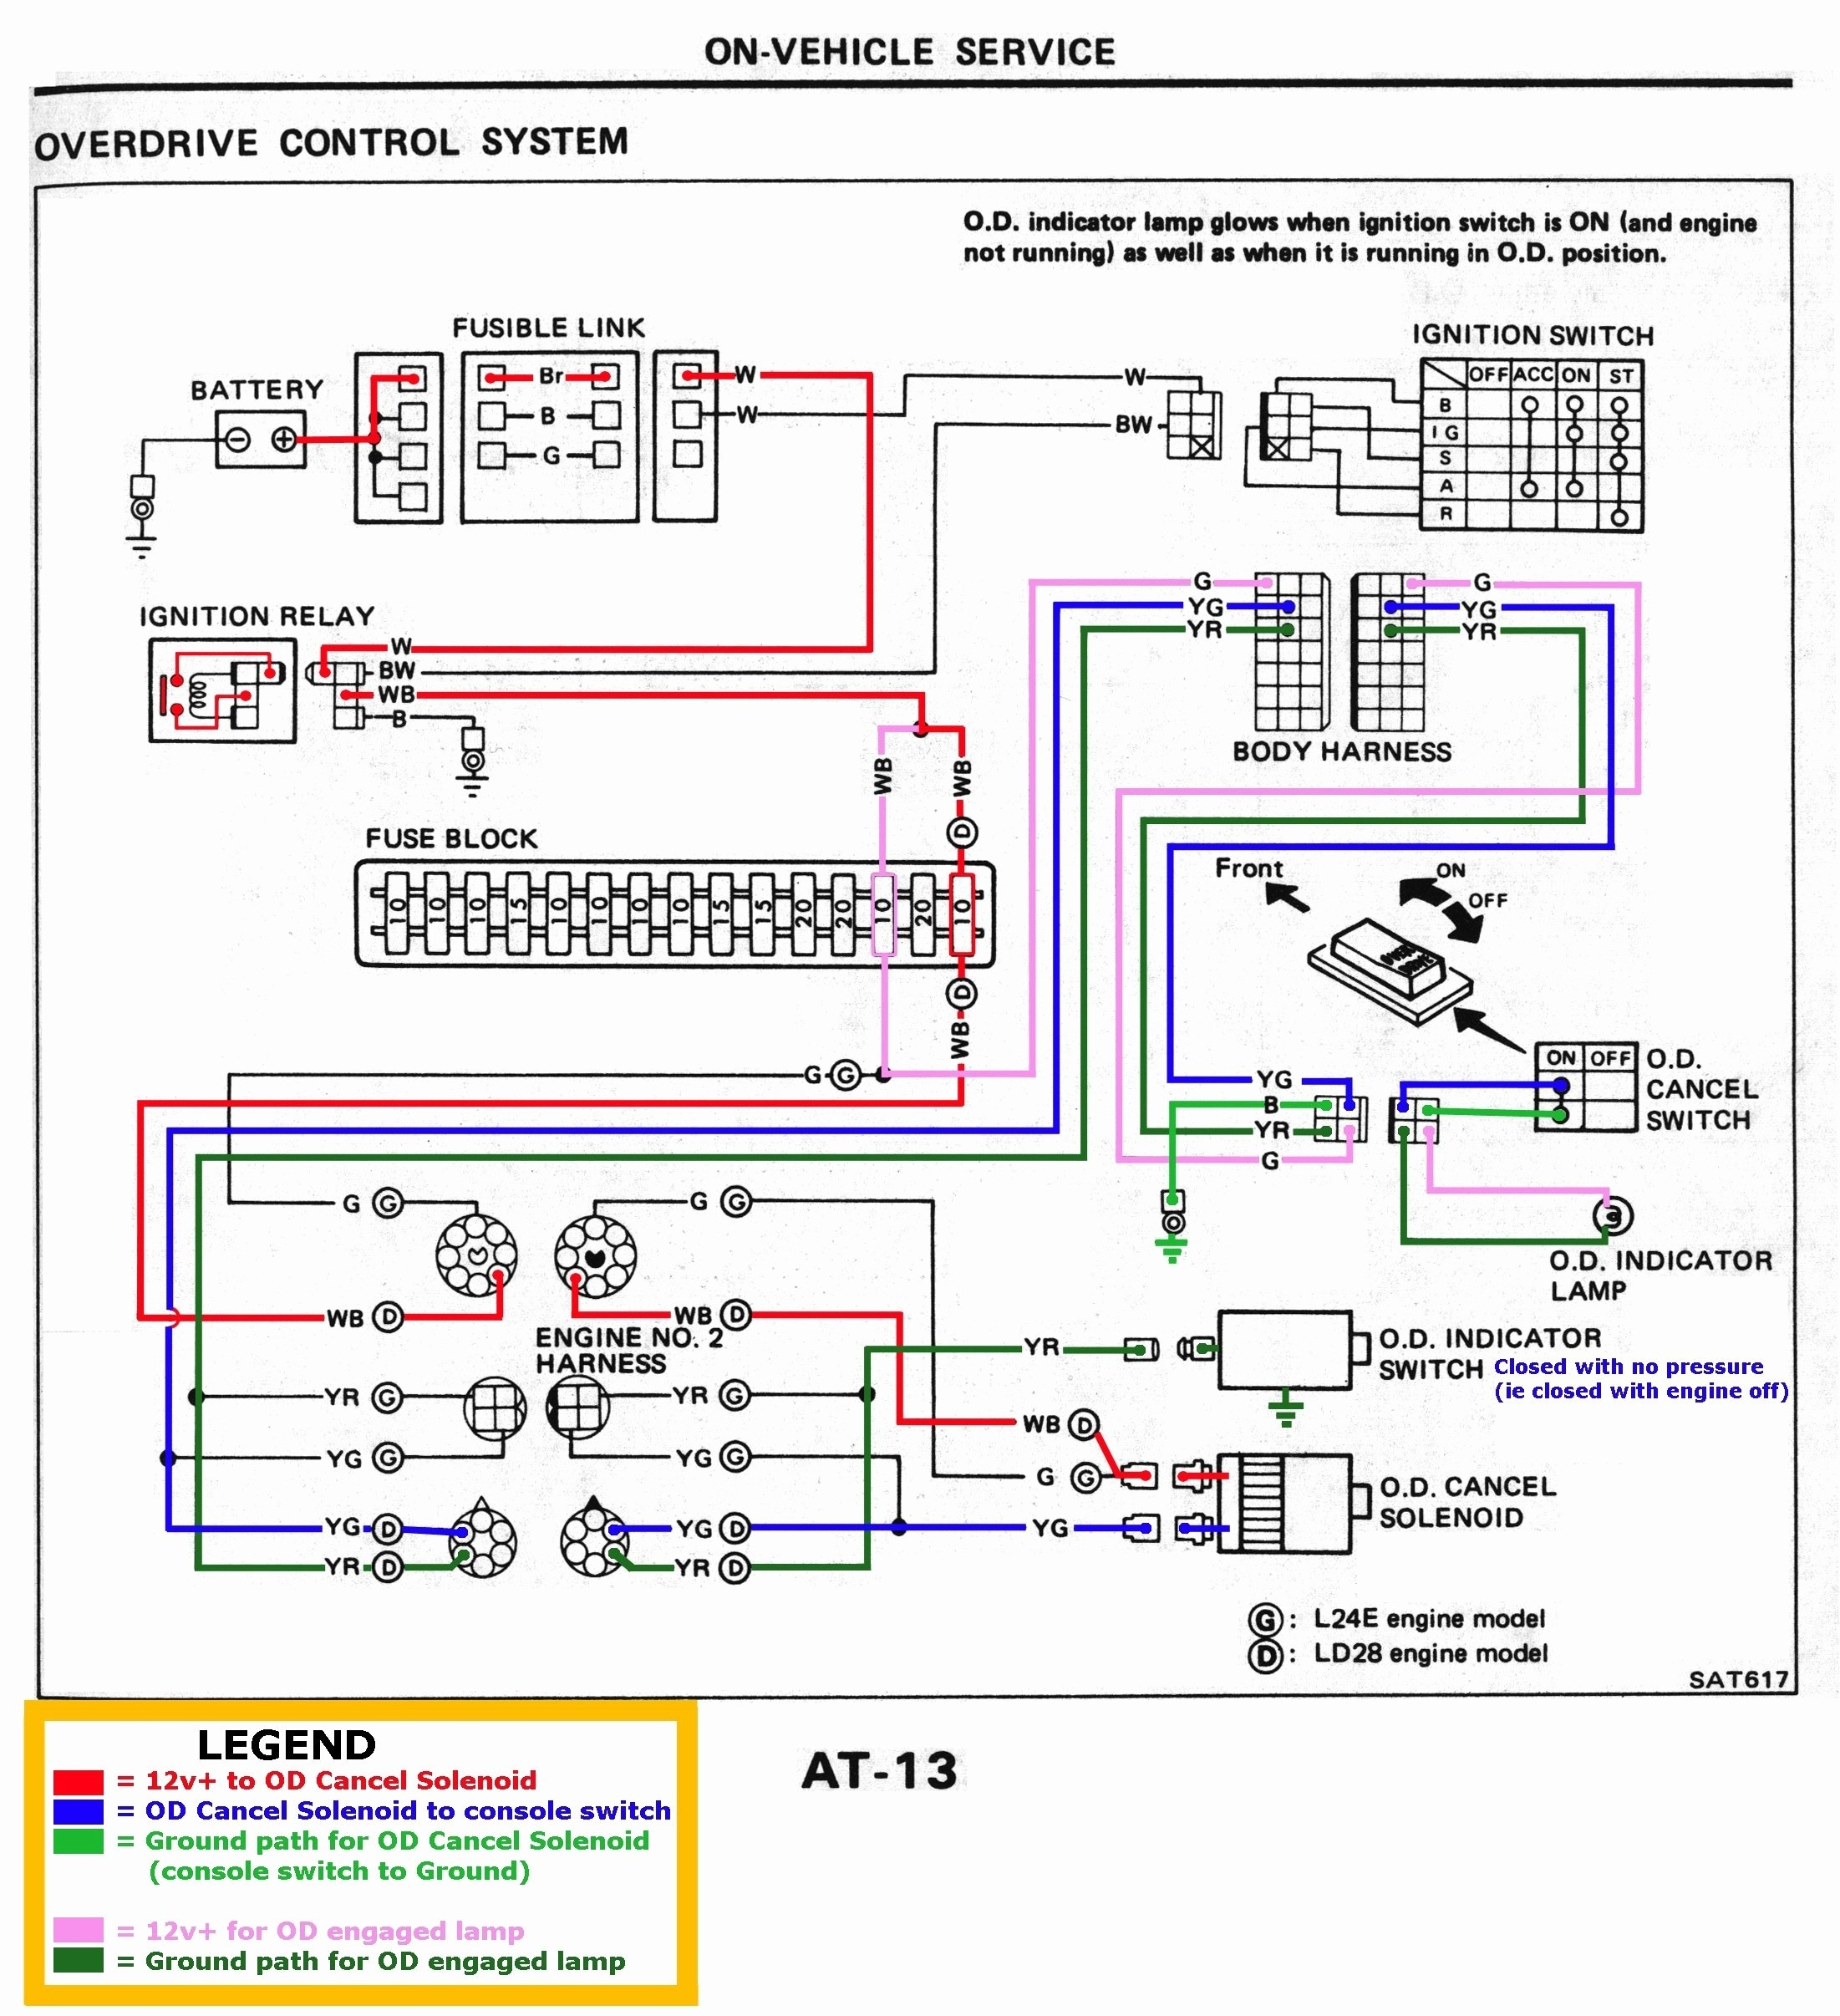 square d wiring diagram Collection-Wiring Diagram for Pressure Switch Air pressor New Square D Air Pressor Pressure Switch Wiring 17-o